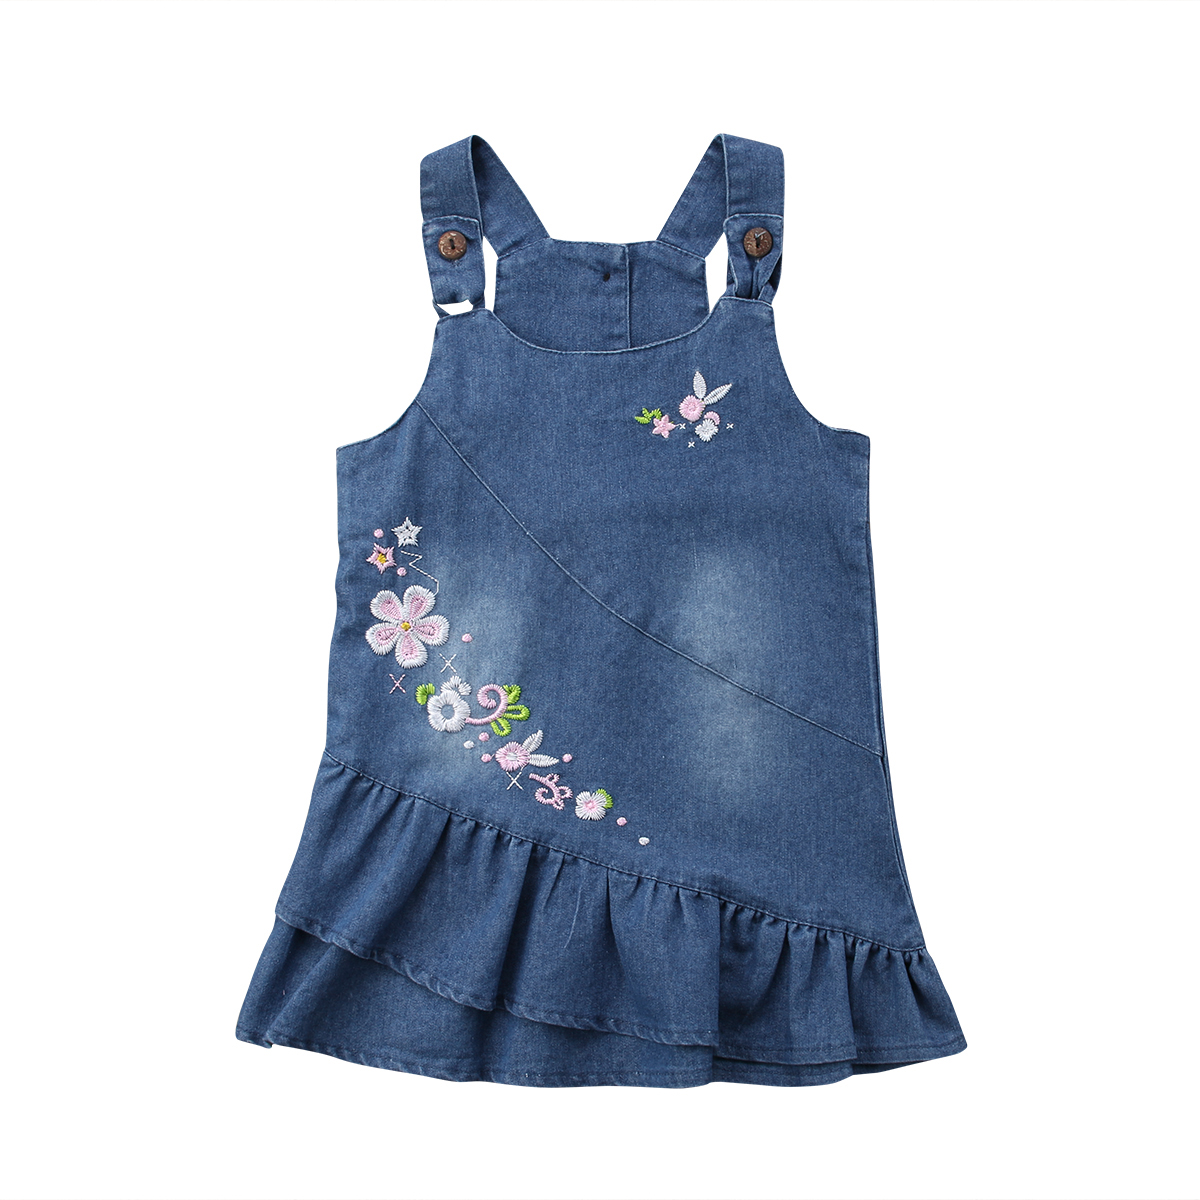 2018 Fashion Baby Girls Suspender Denim Dress Summer Floral Toddler Kids Sundress Jeans Sleeveless Dresses for Kids Girl Clothes ems dhl free shipping toddler little girl s 2017 princess ruffles layers sleeveless lace dress summer style suspender